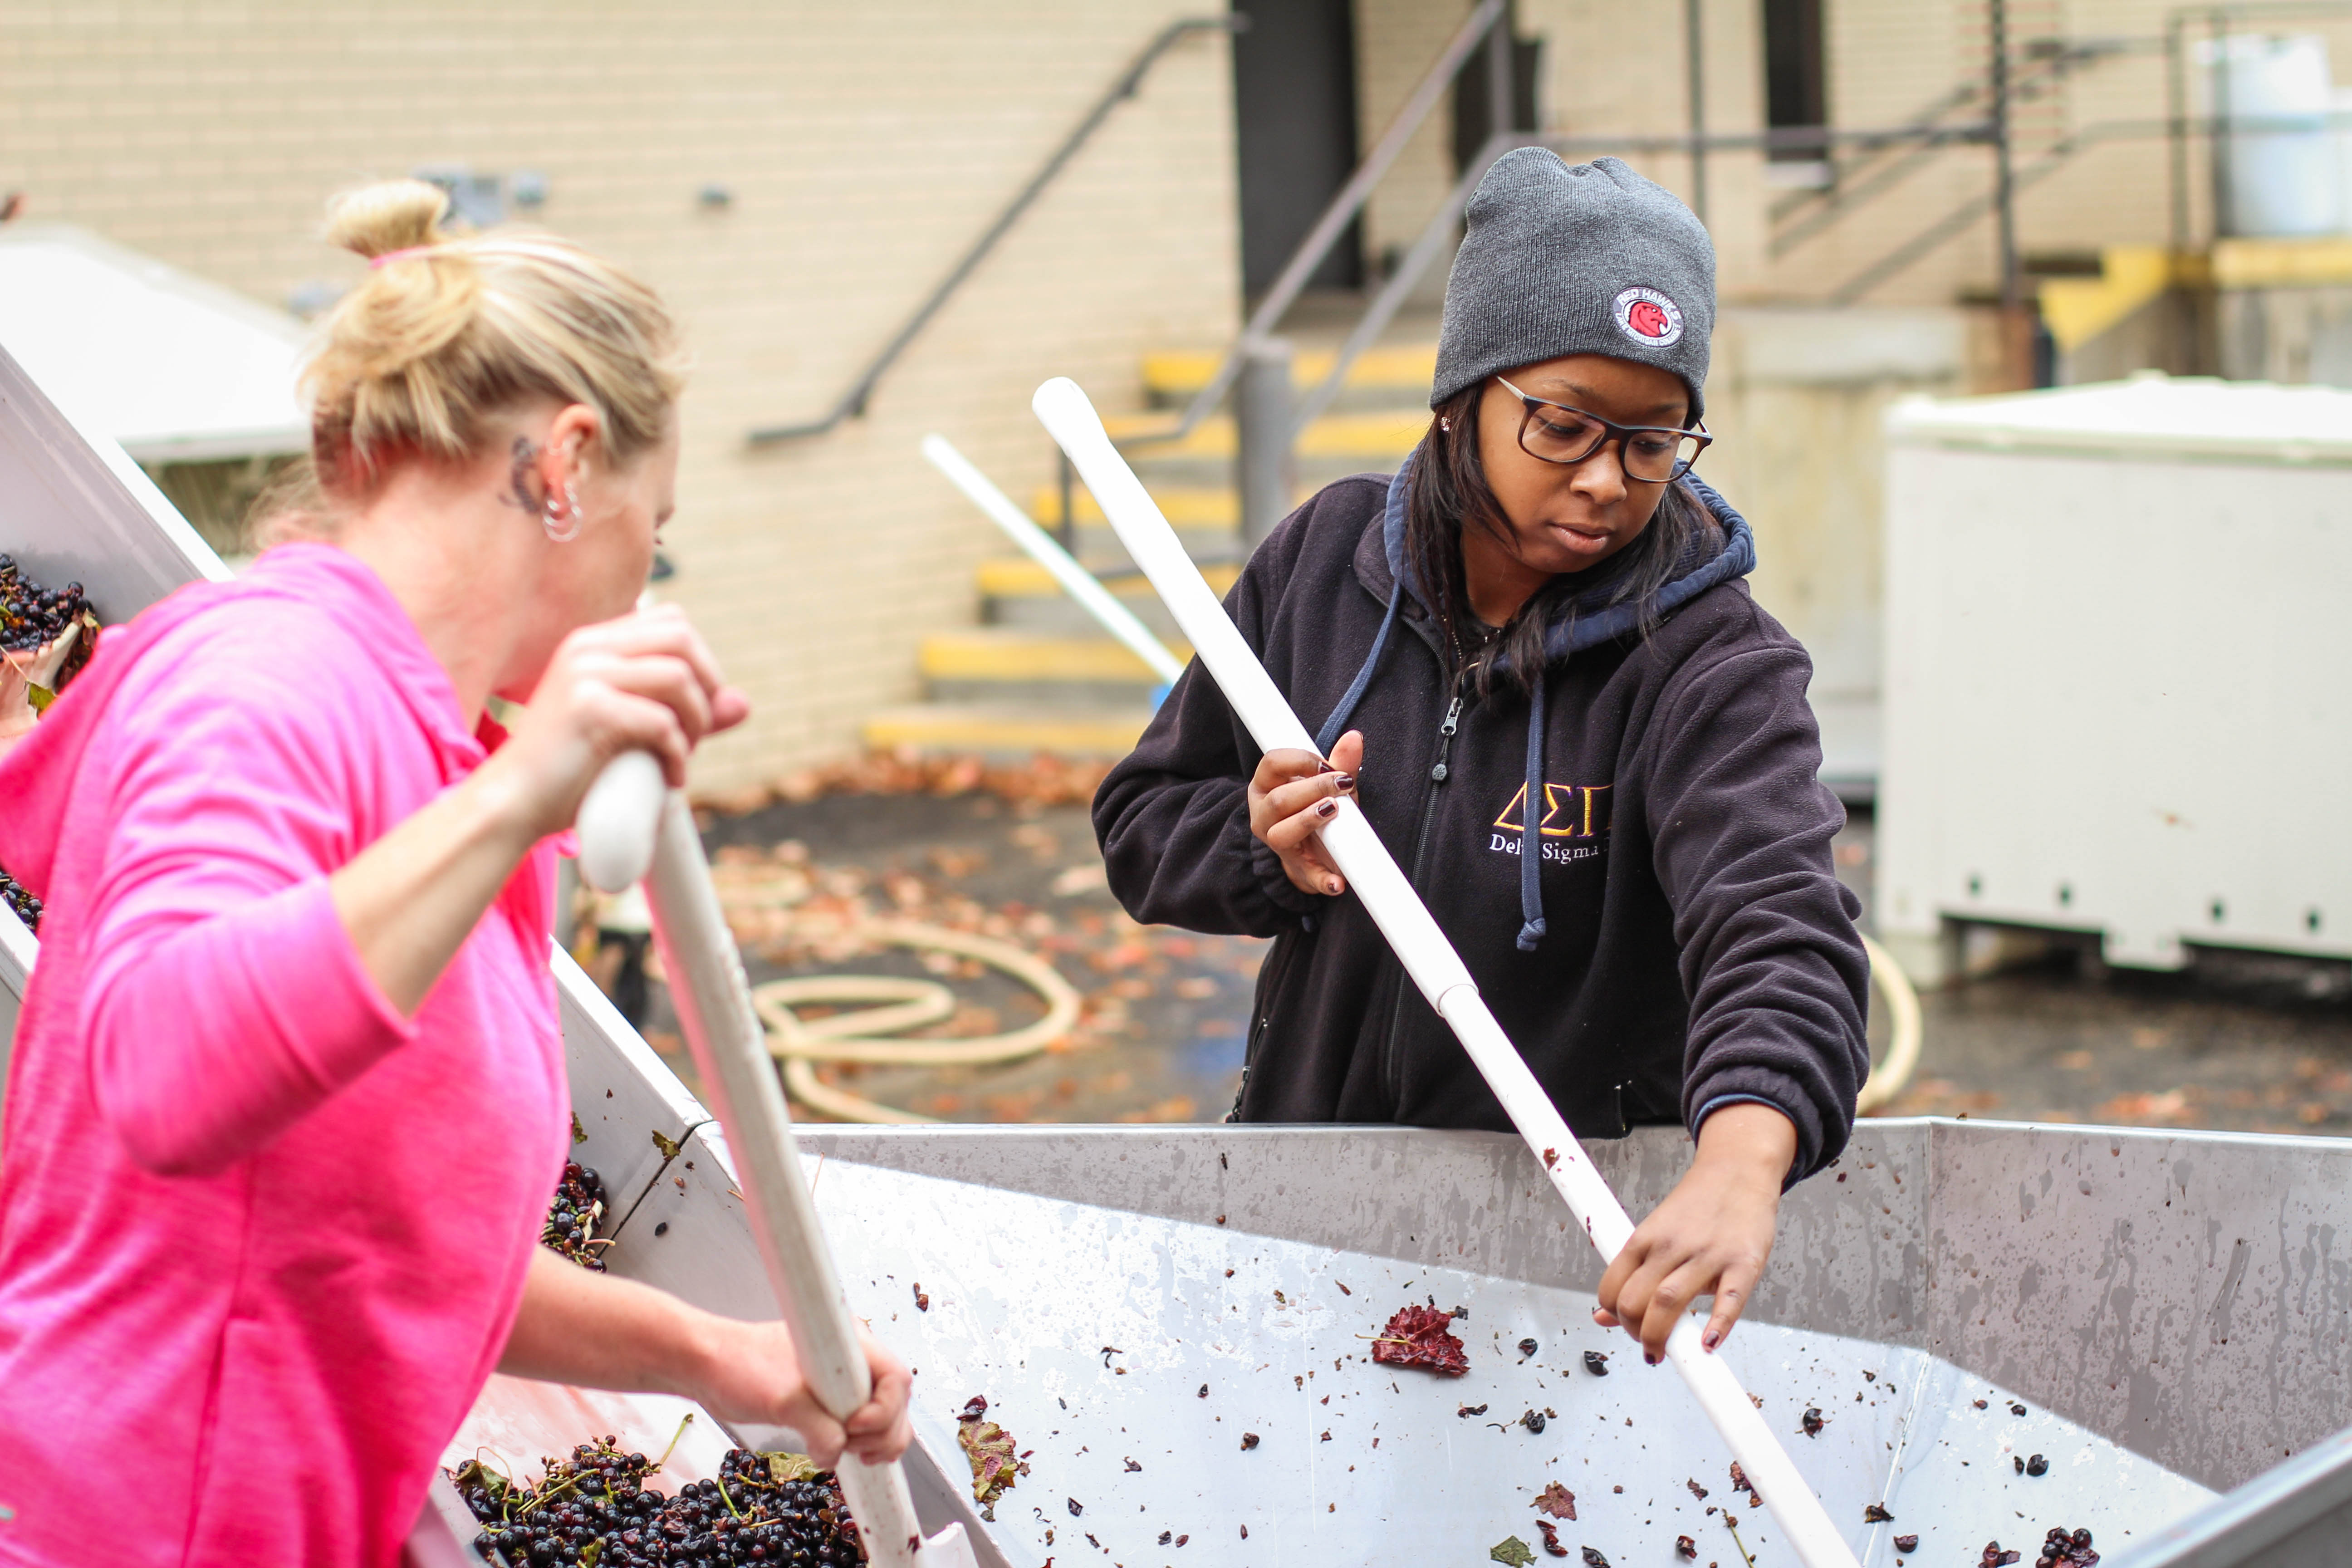 A young Black woman with a black Delta Sigma Pi sweatshirt scoops red grapes next to an older white woman with yellow hair and a pink sweatshirt.